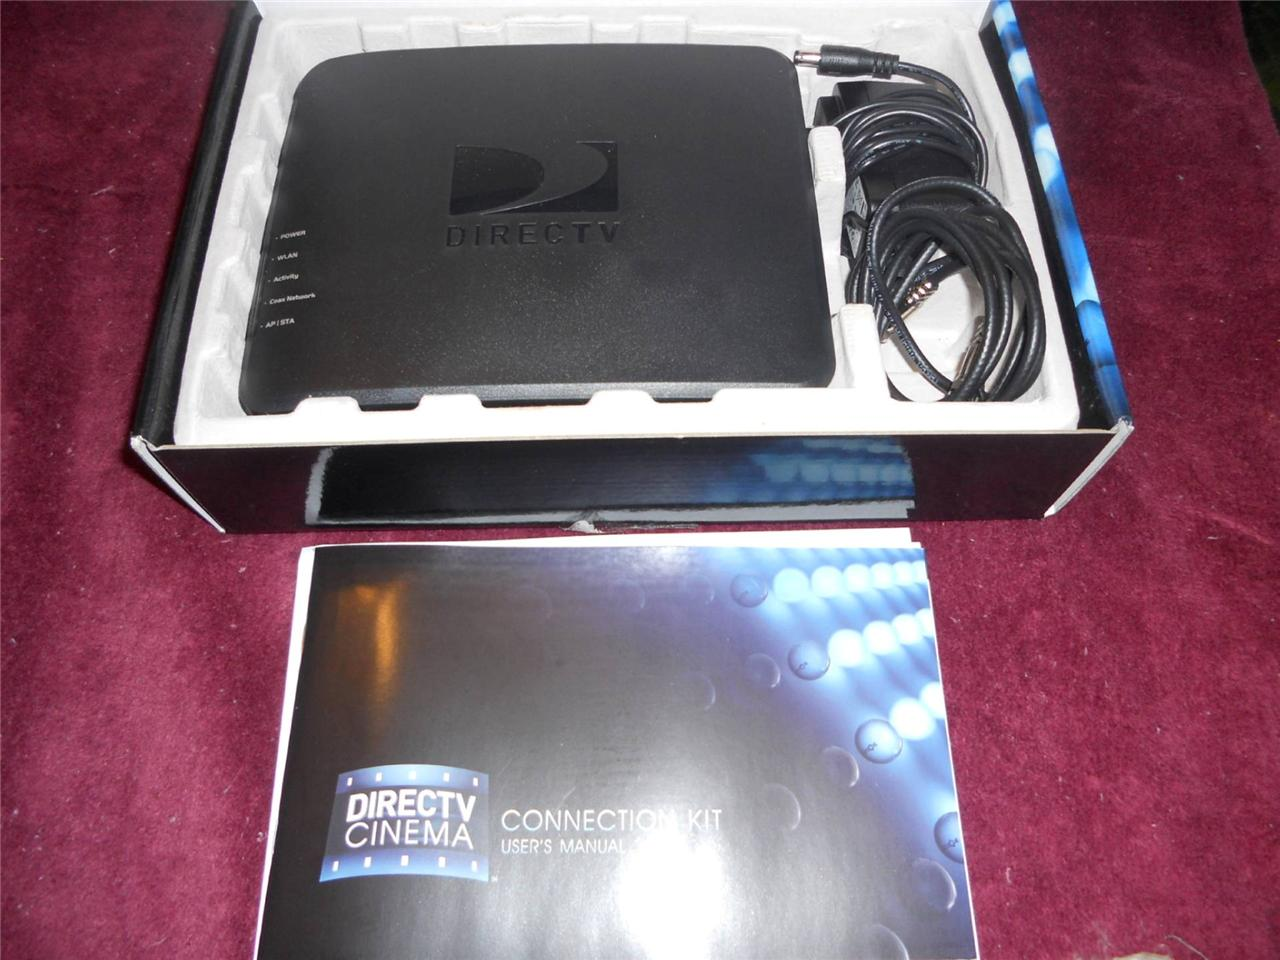 Direct-TV-Cinema-Connection-Kit-TV-Genie-Wireless-Connection-Router ...